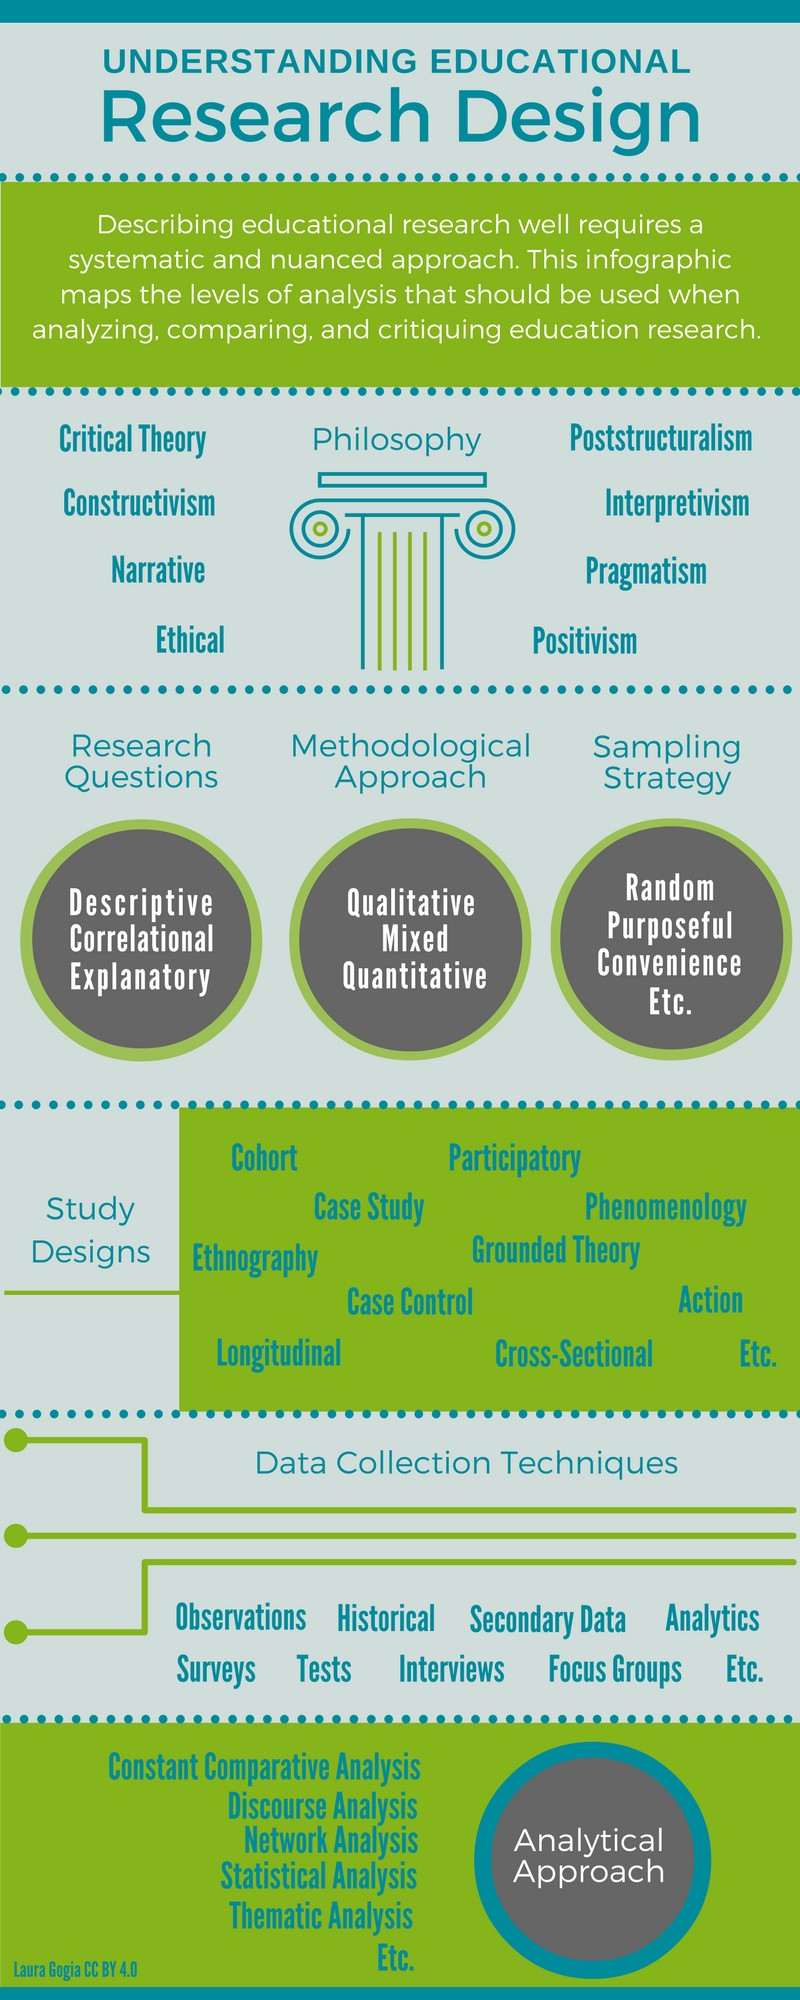 Understanding Educational Research Design: The Infographic